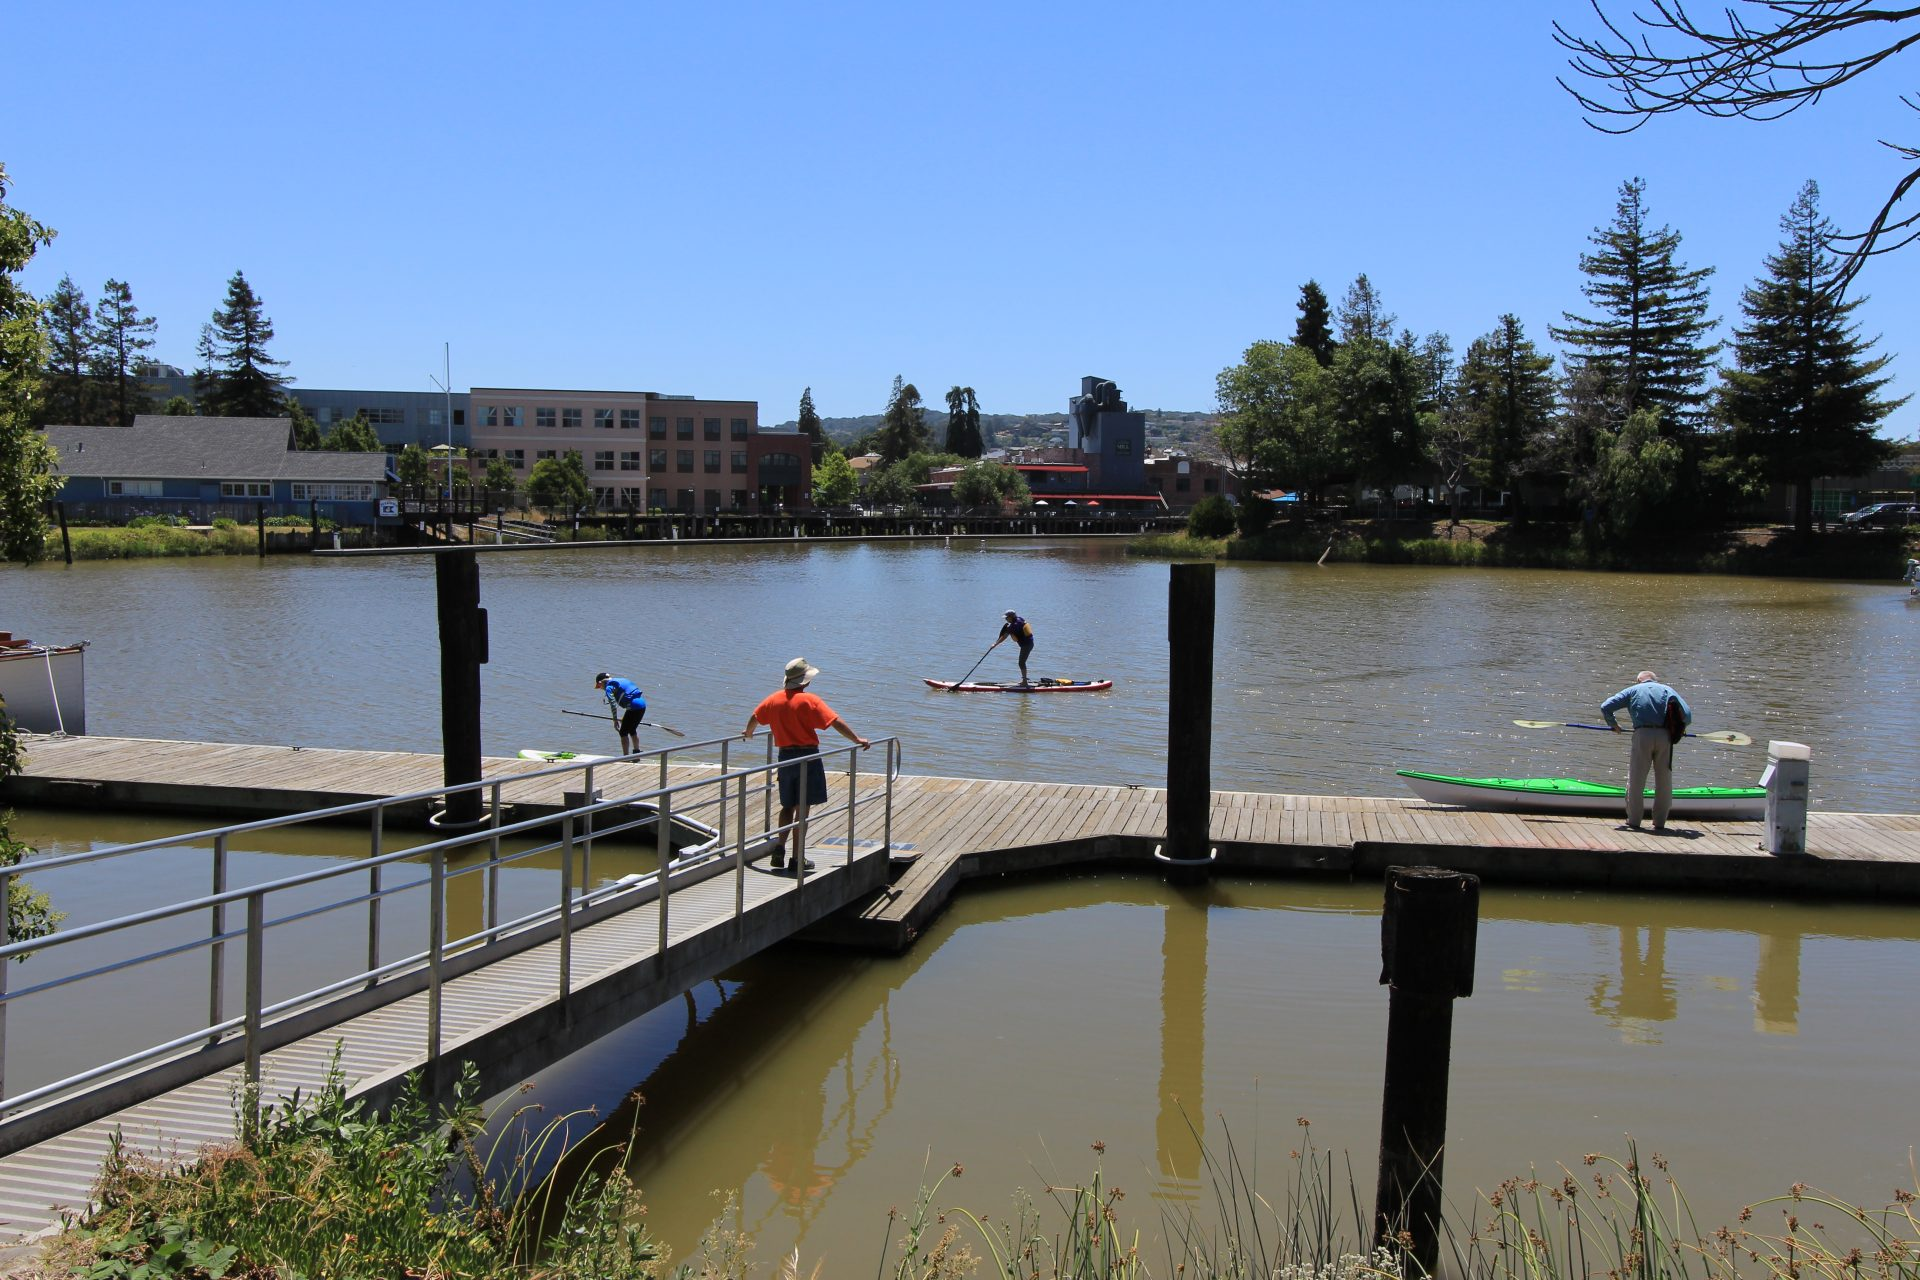 Person standing on ramp down to dock while a kayaker gets ready and a standup paddler passes by